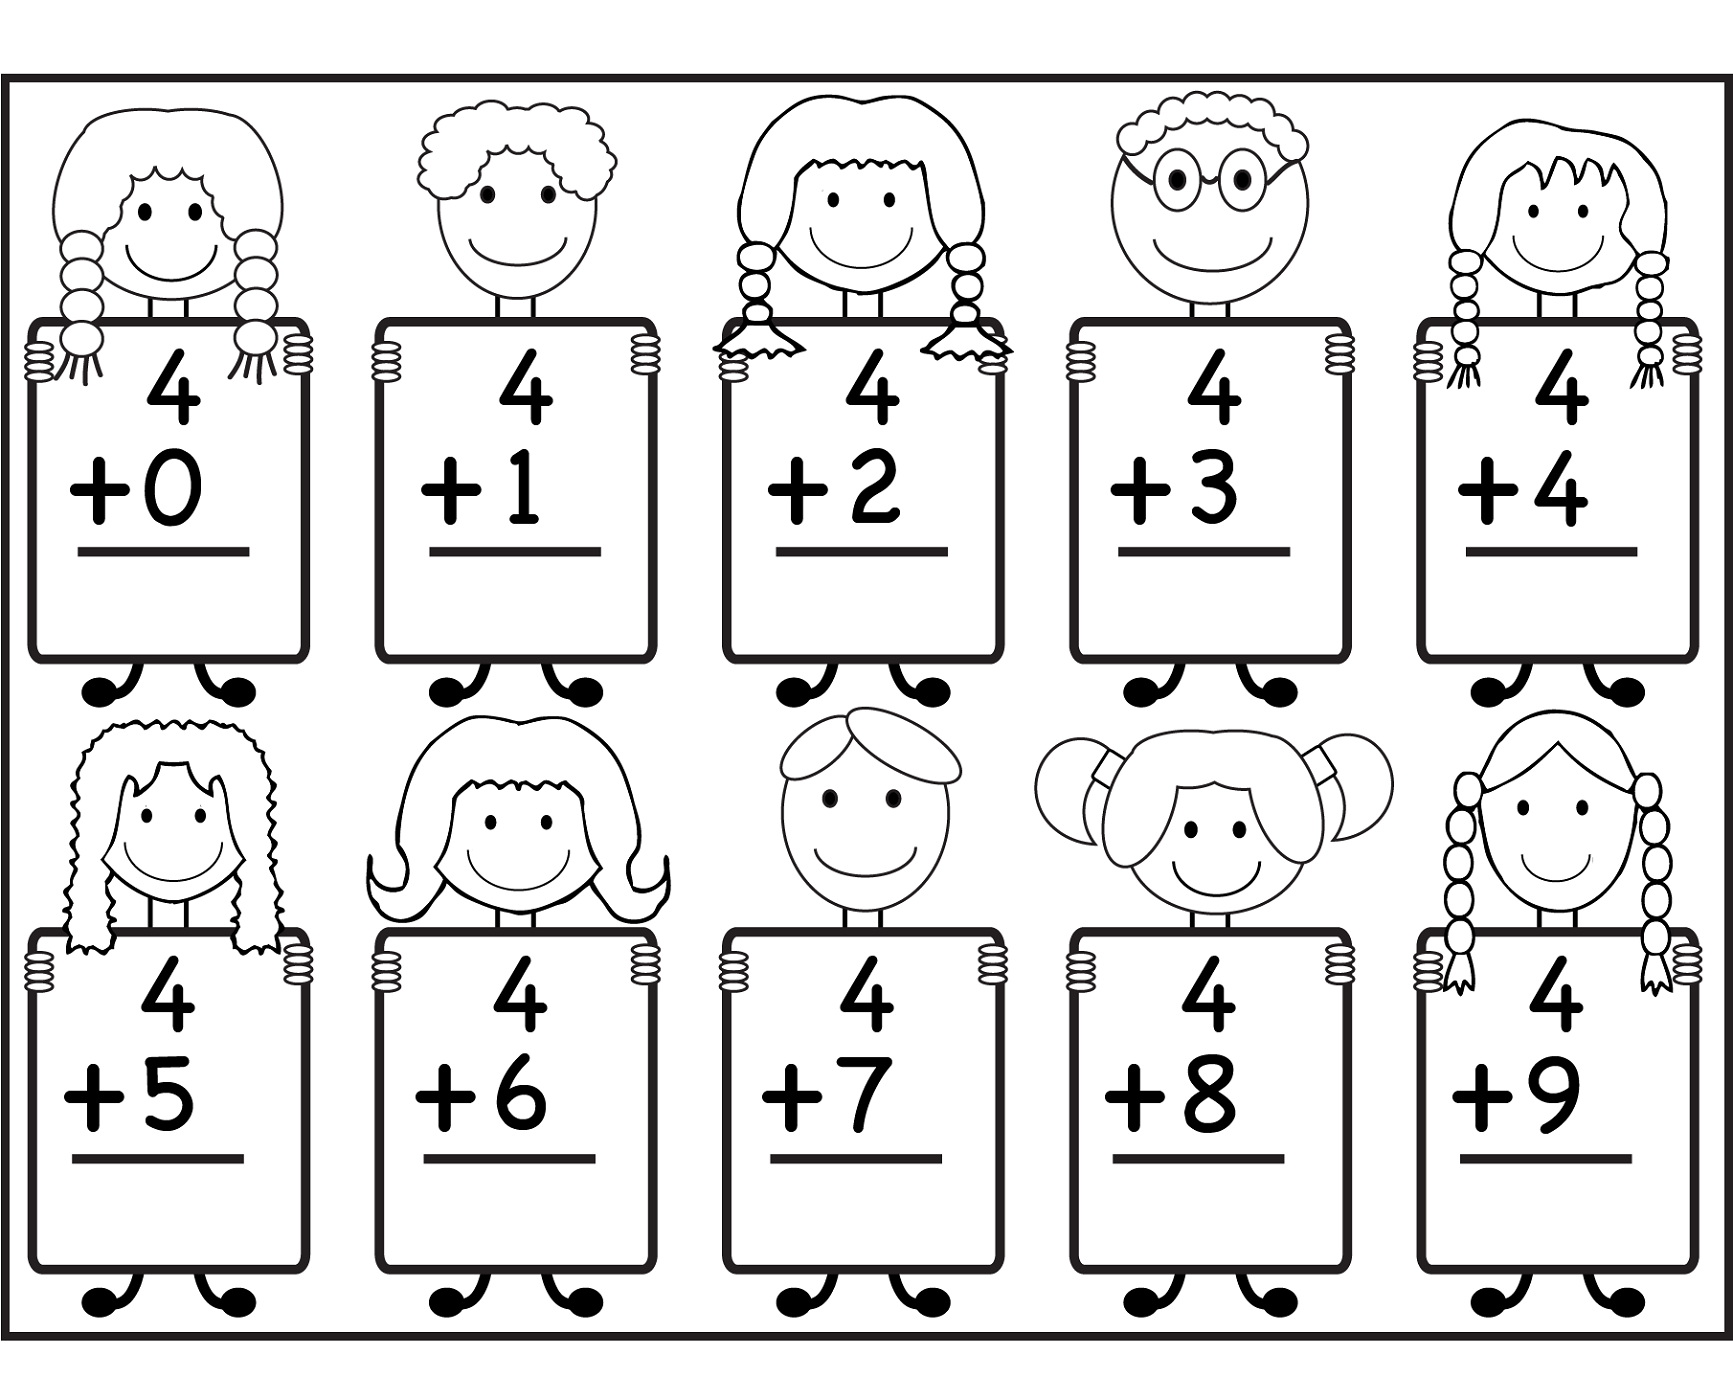 fun sheets for math for children - Printable Fun Sheets